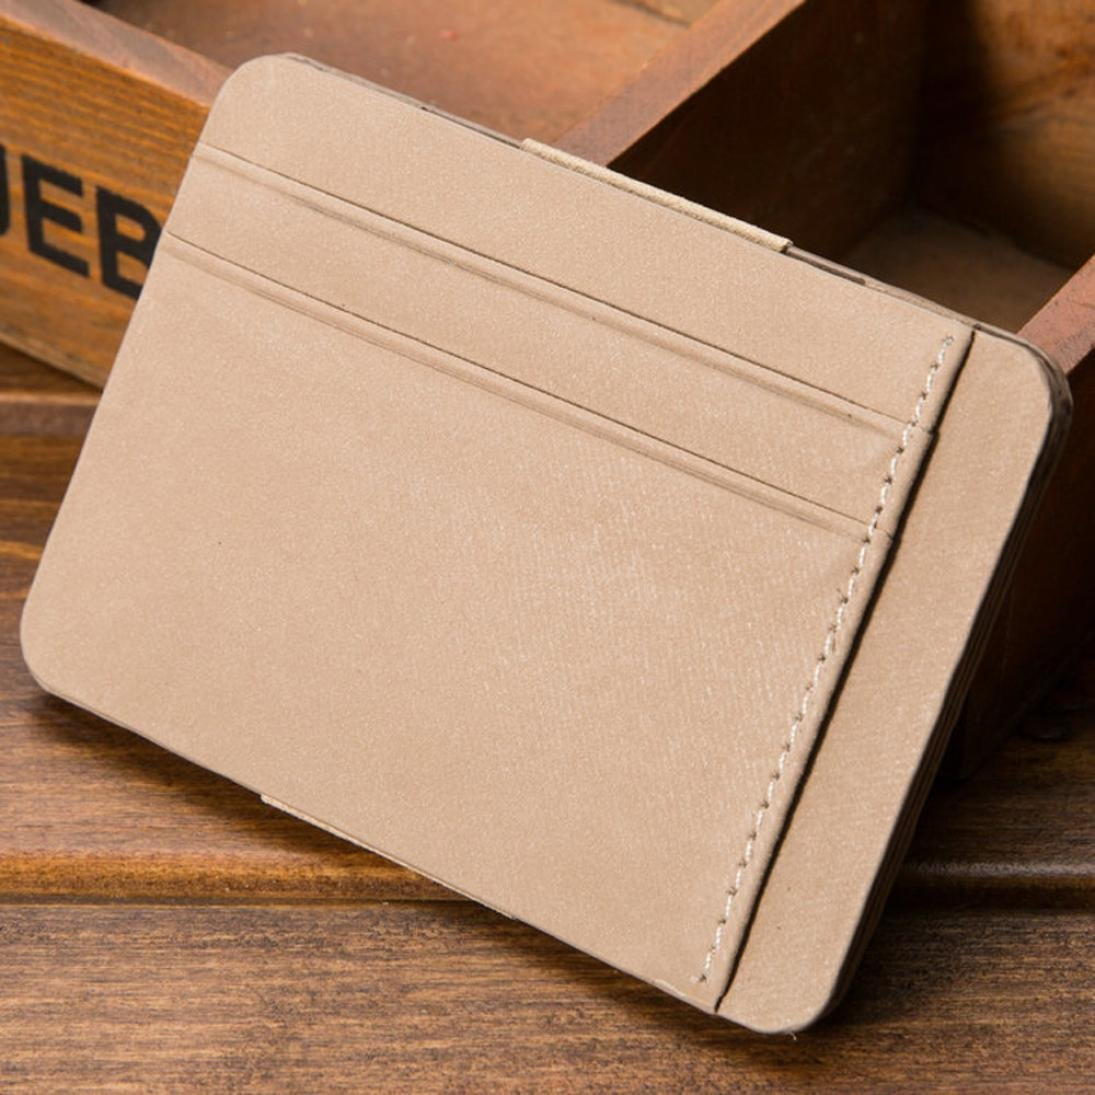 Pocciol Mens Bifold Business Wallet, Credit Card Pockets Leather Zipper ID Ultrathin (Beige) by Pocciol (Image #2)